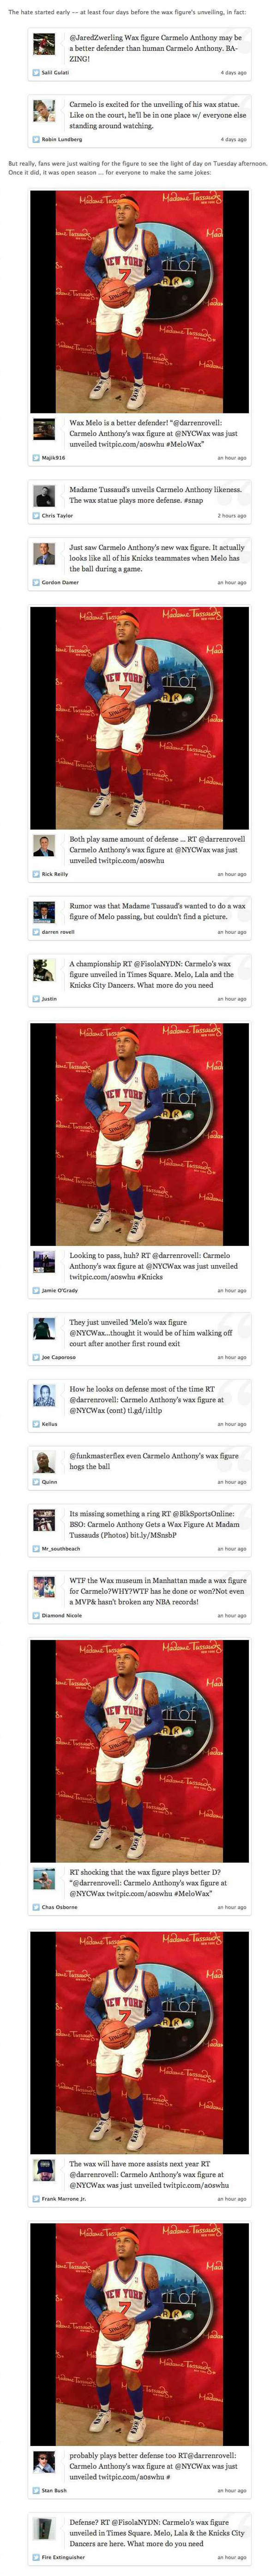 Fans react to Carmelo Anthony's new wax figure. (Screencap via Storify)